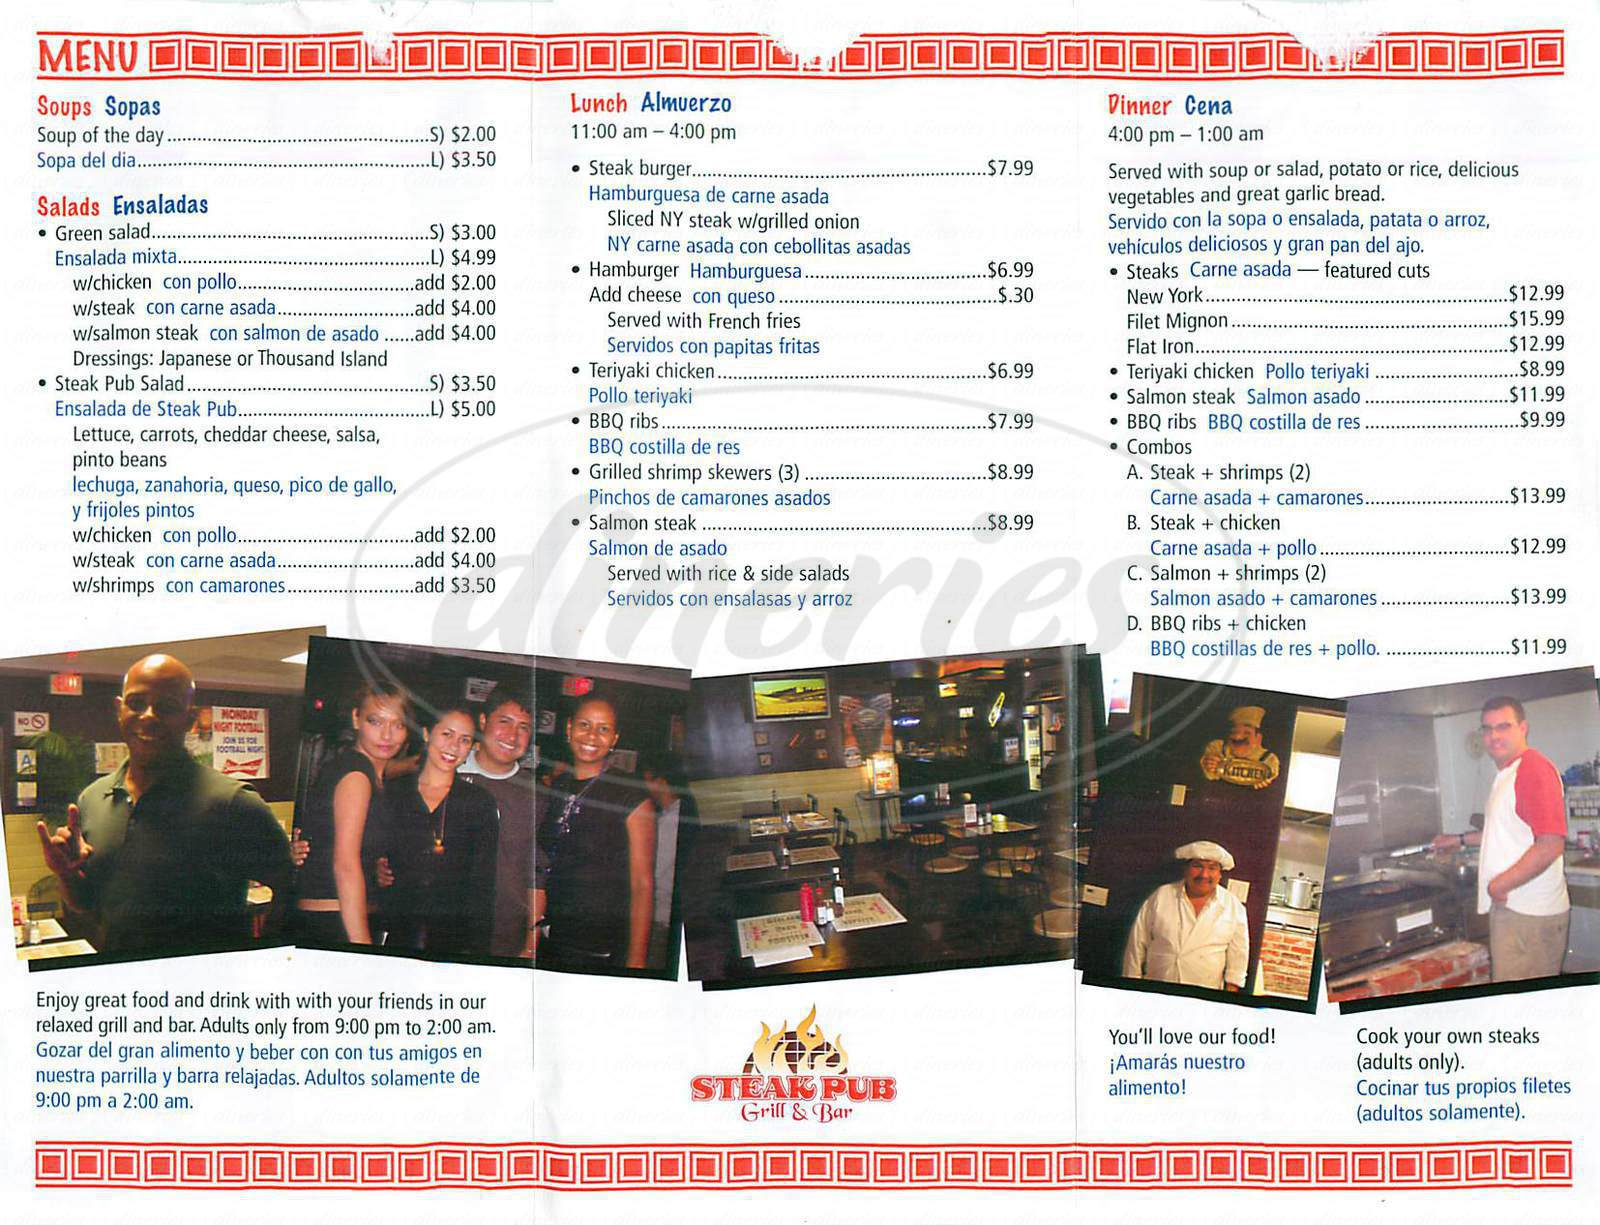 menu for Steak Pub Grill & Bar